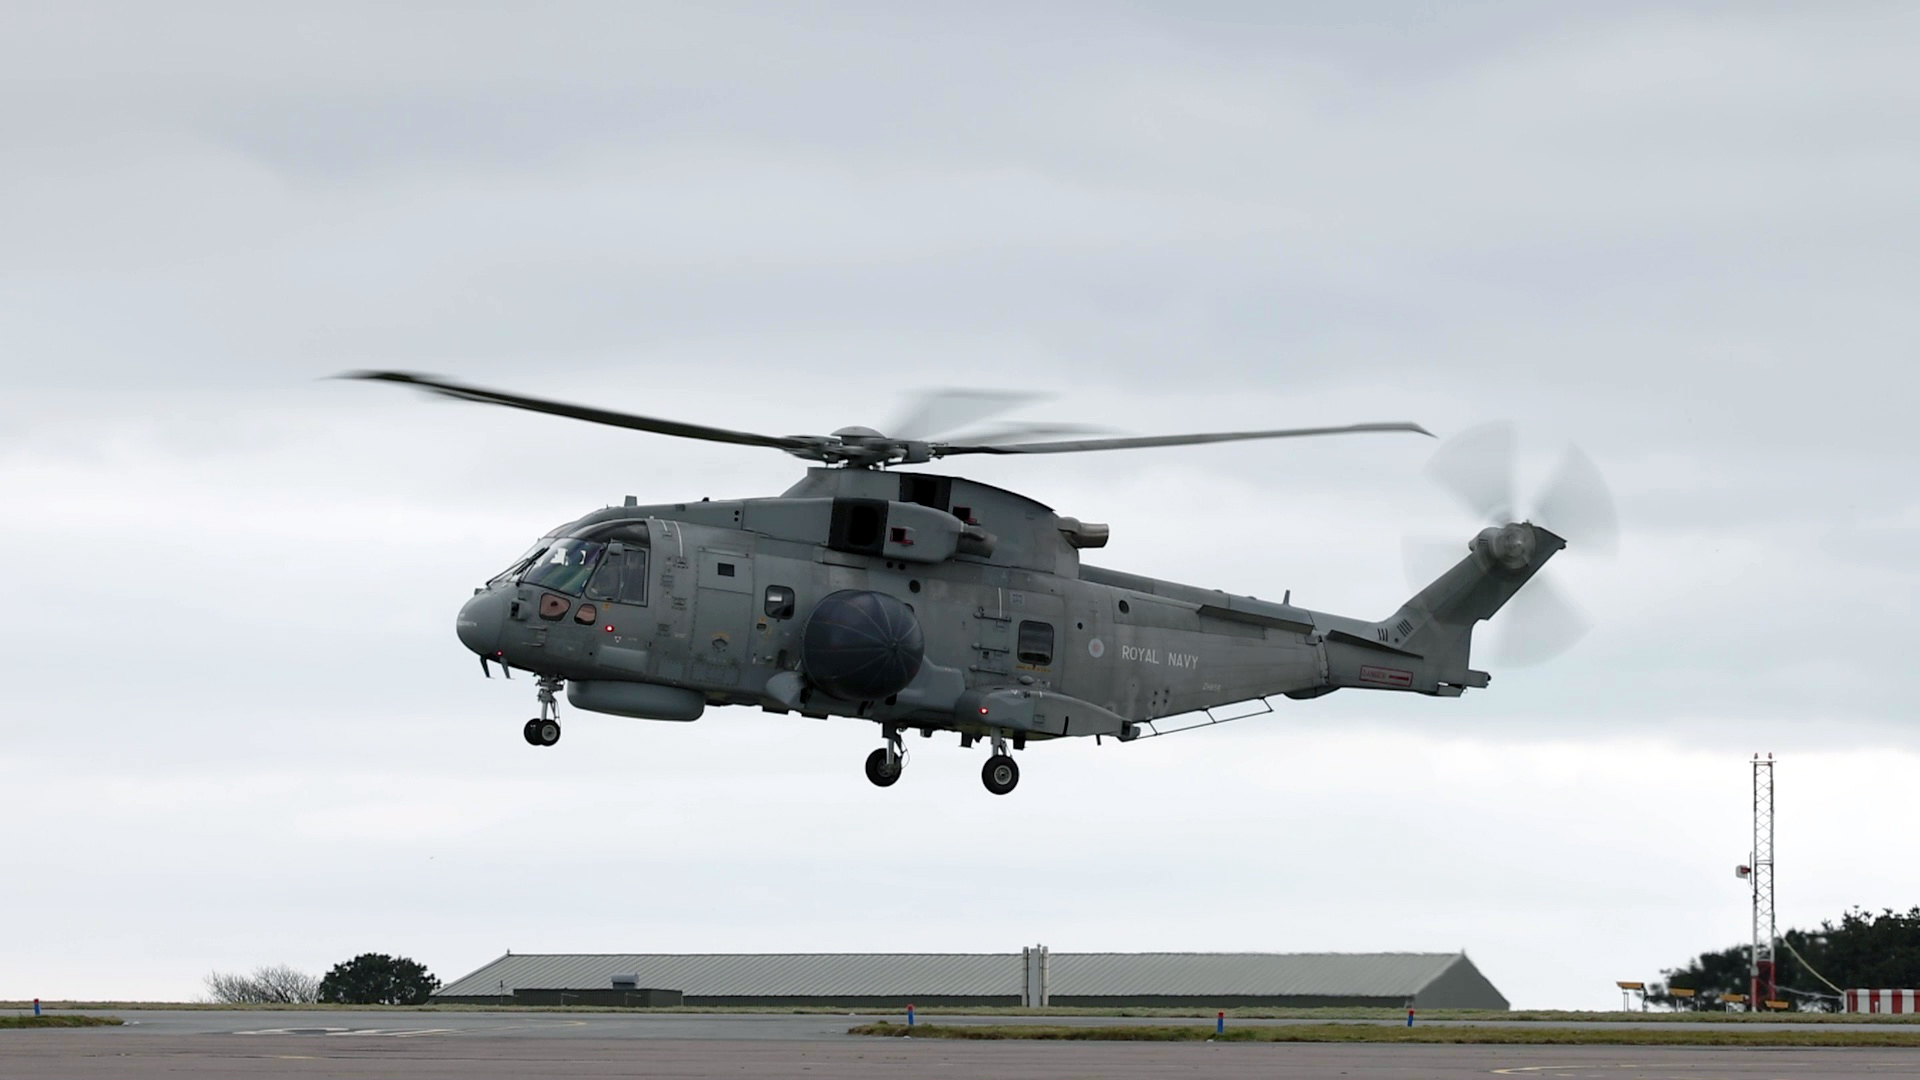 the first crowsnest merlin lifts off from culdrose 1 - naval post- naval news and information